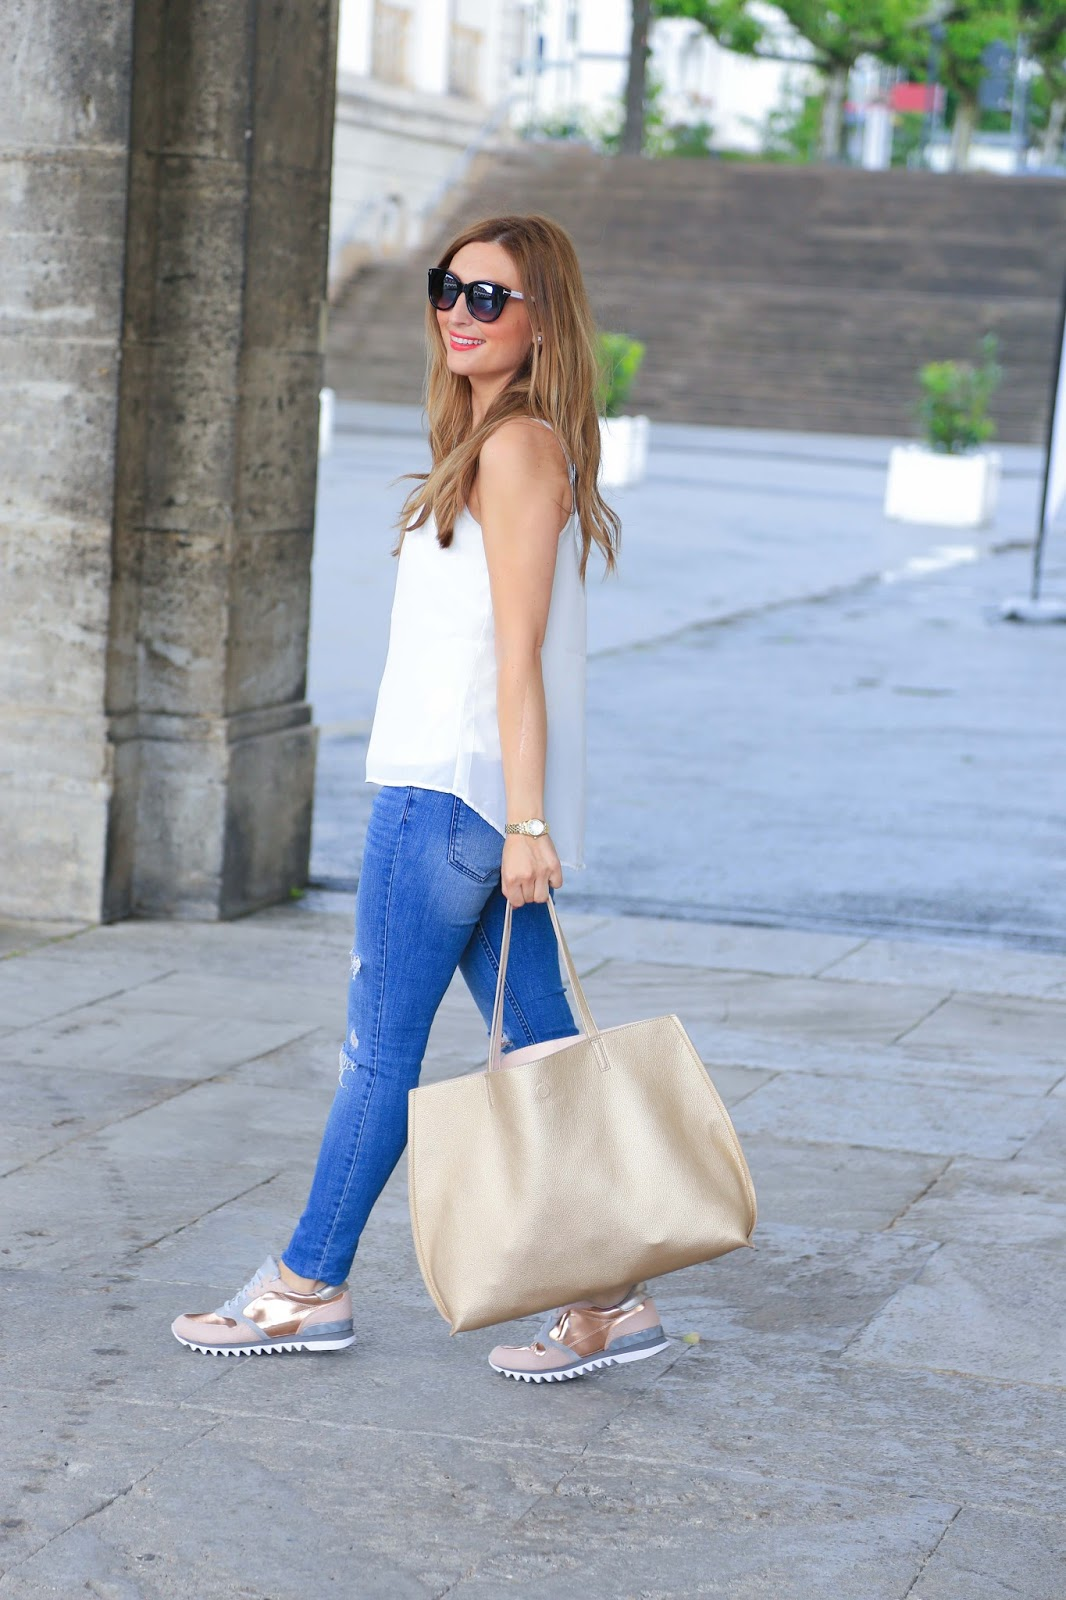 Blogger Outfits ims Sommer - Blogger aus Frankfurt - Frankfurt Fashionblogger - Beautyblogger aus Frankfurt